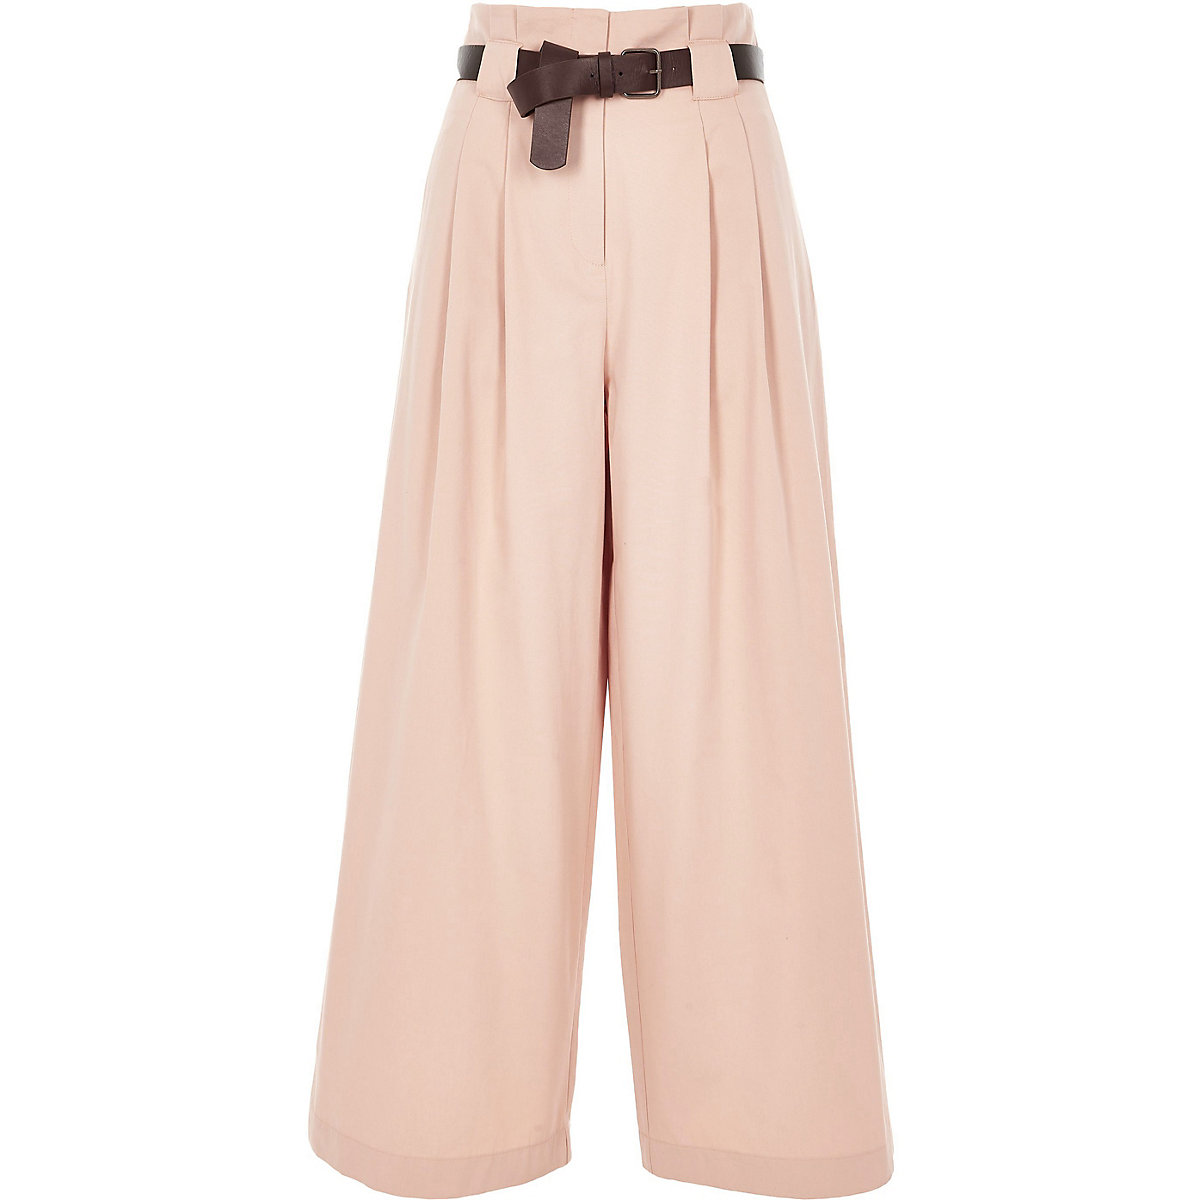 Petite Pink Belted Wide-Leg Trousers